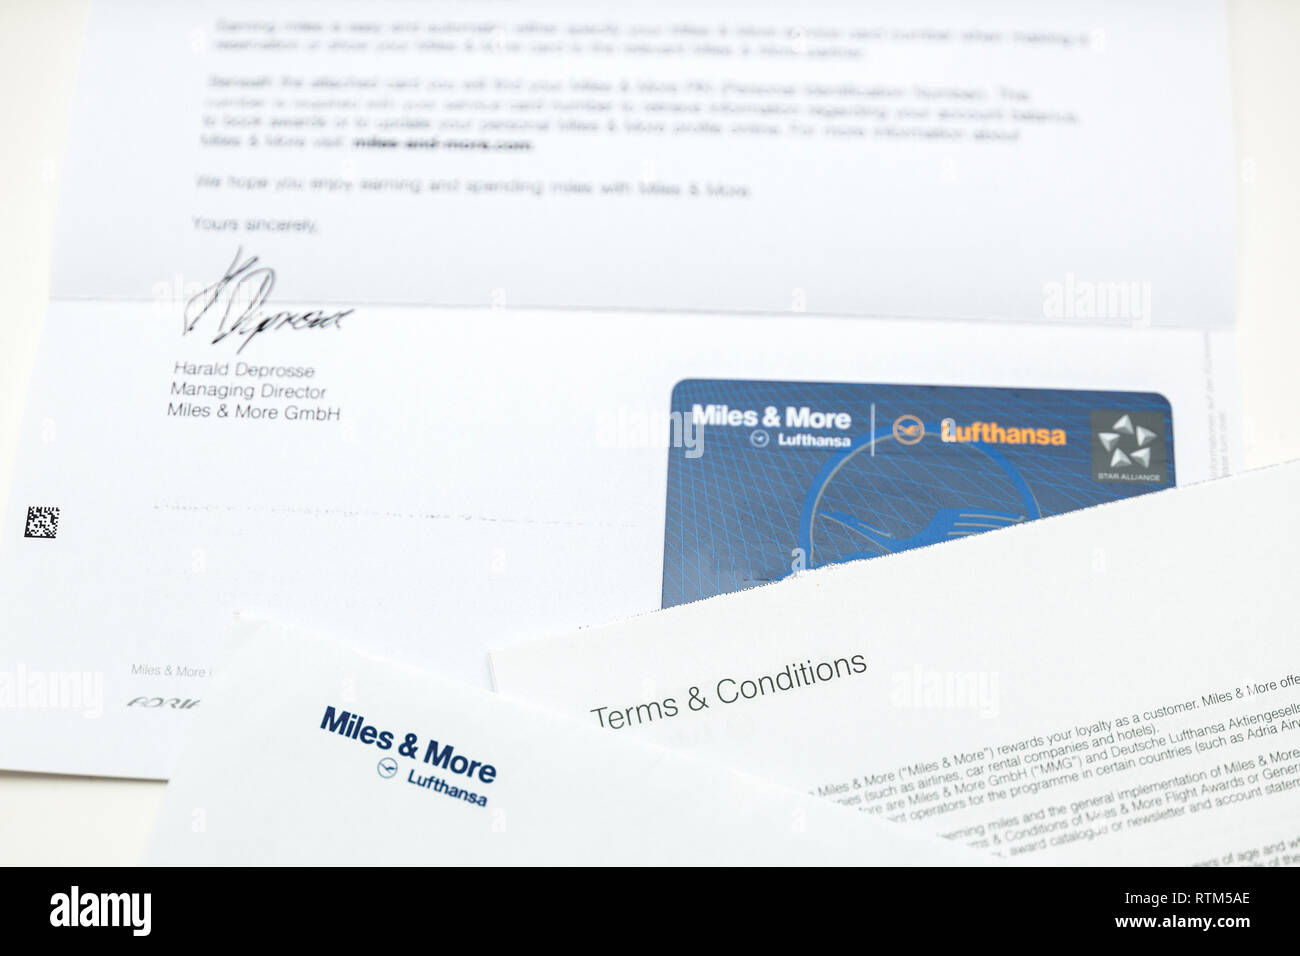 FRANKFURT, GERMANY - JAN 14, 2015: Miles and More traveler card received by post from German Lufthansa airlines - Stock Image